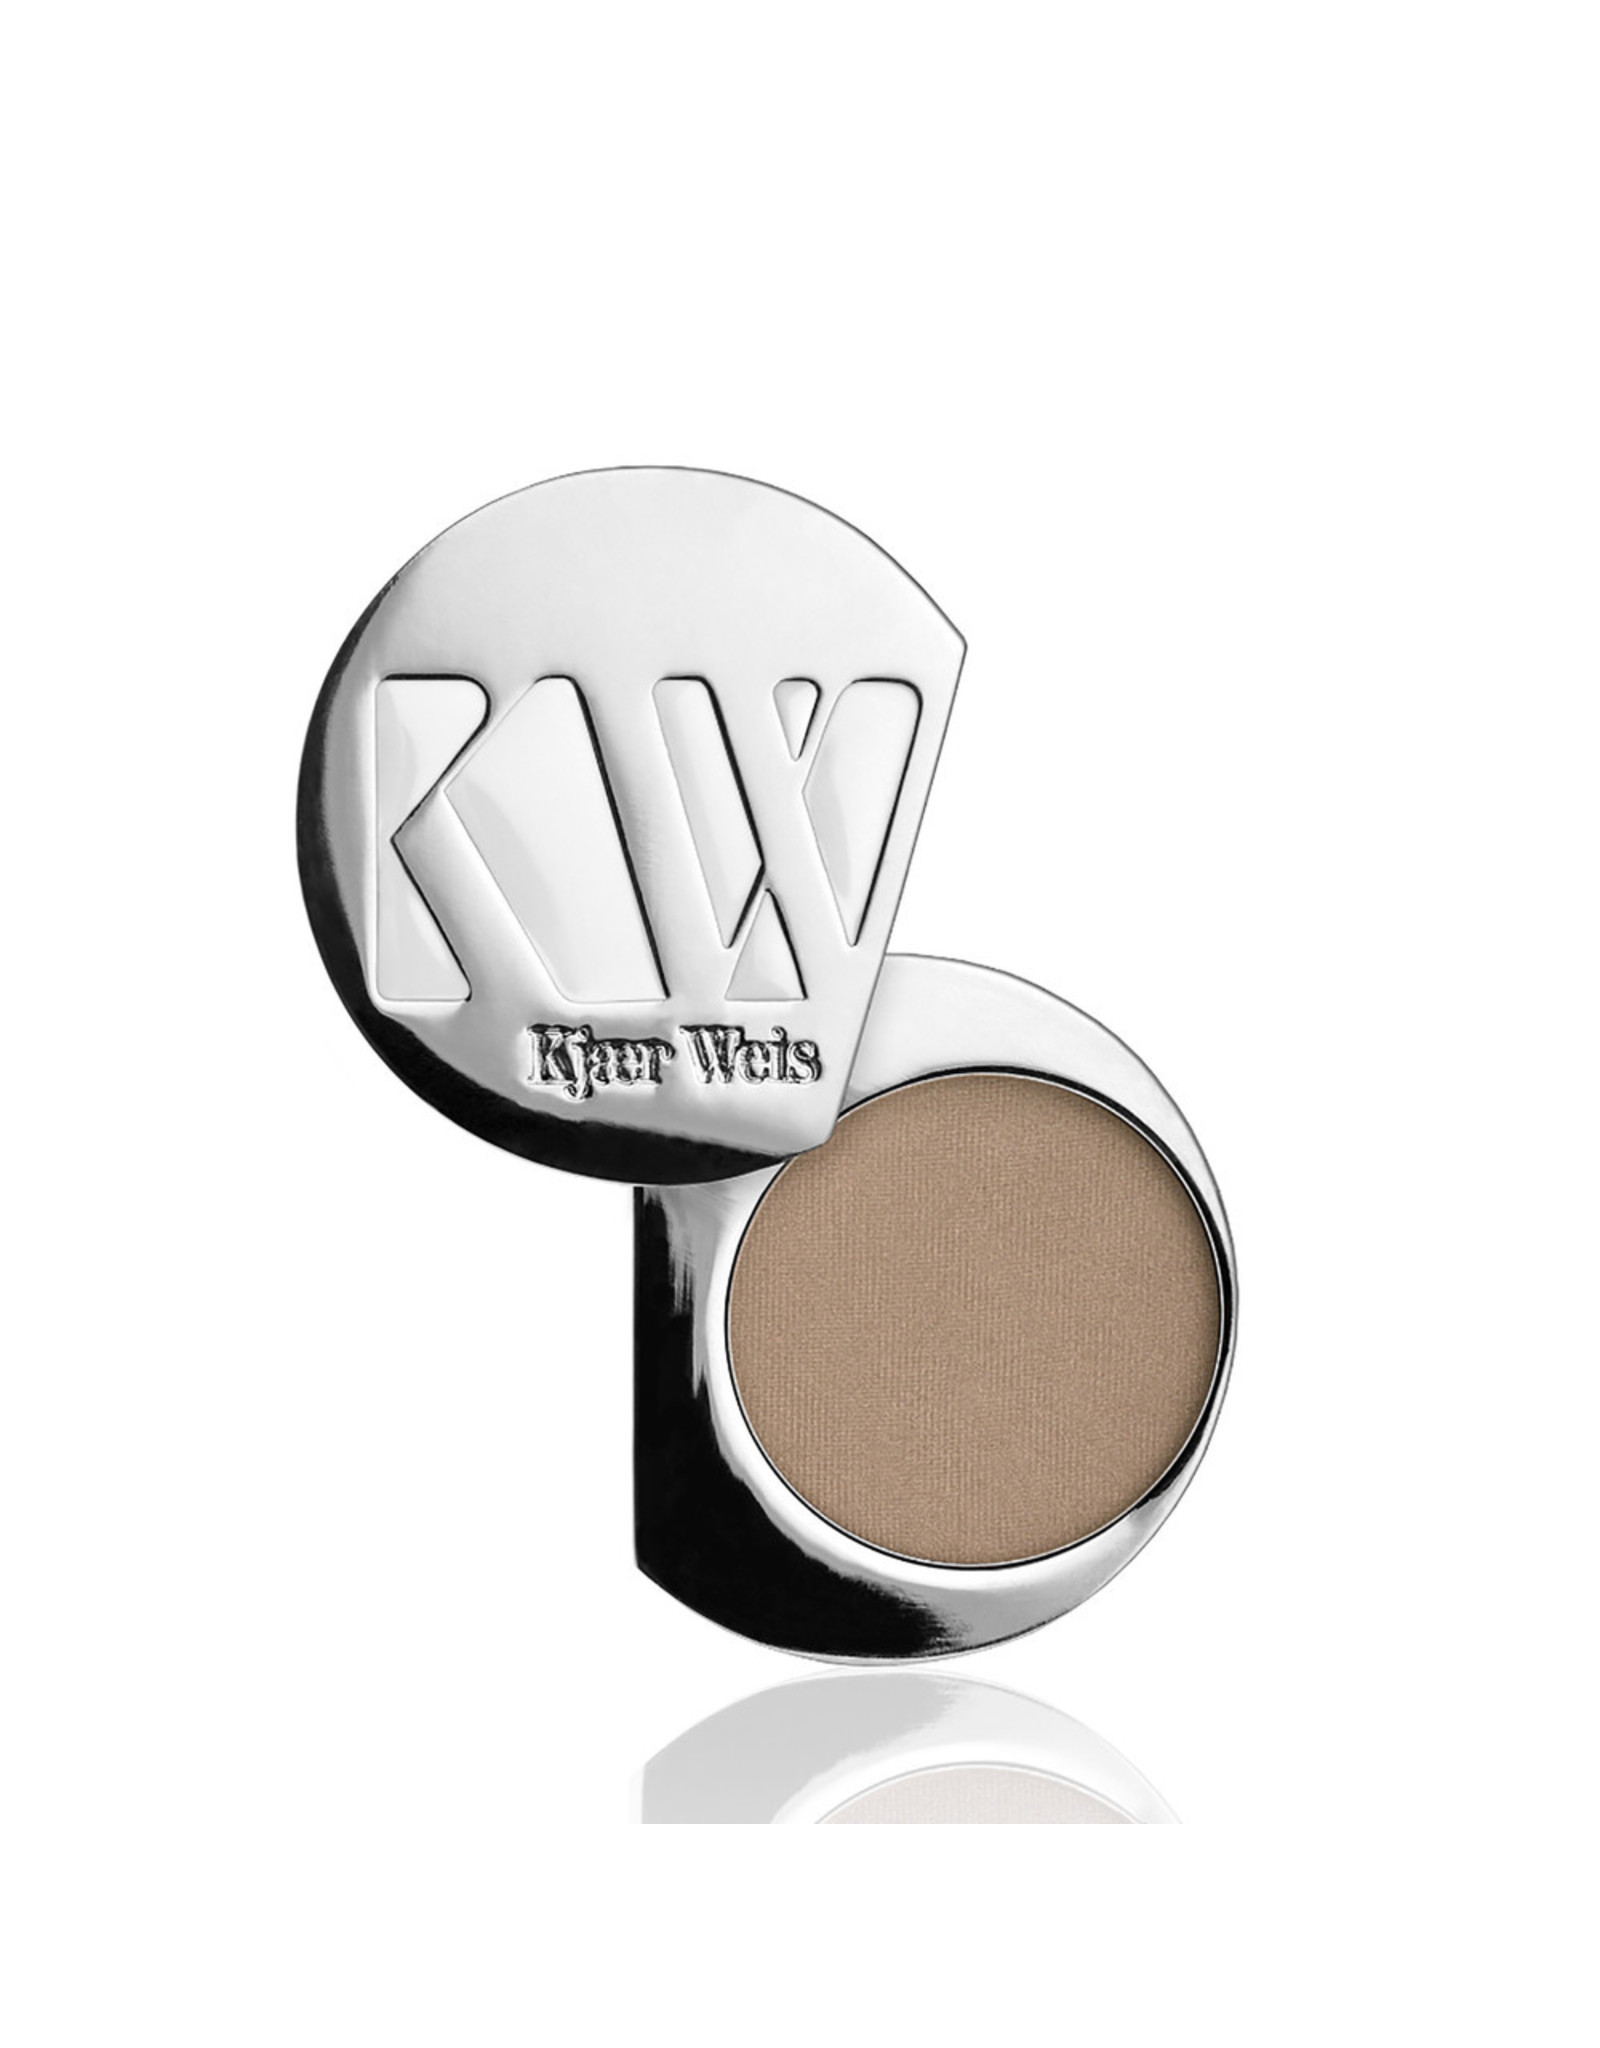 Kjaer Weis Kjaer Weis Eye Shadow Compact - Grace